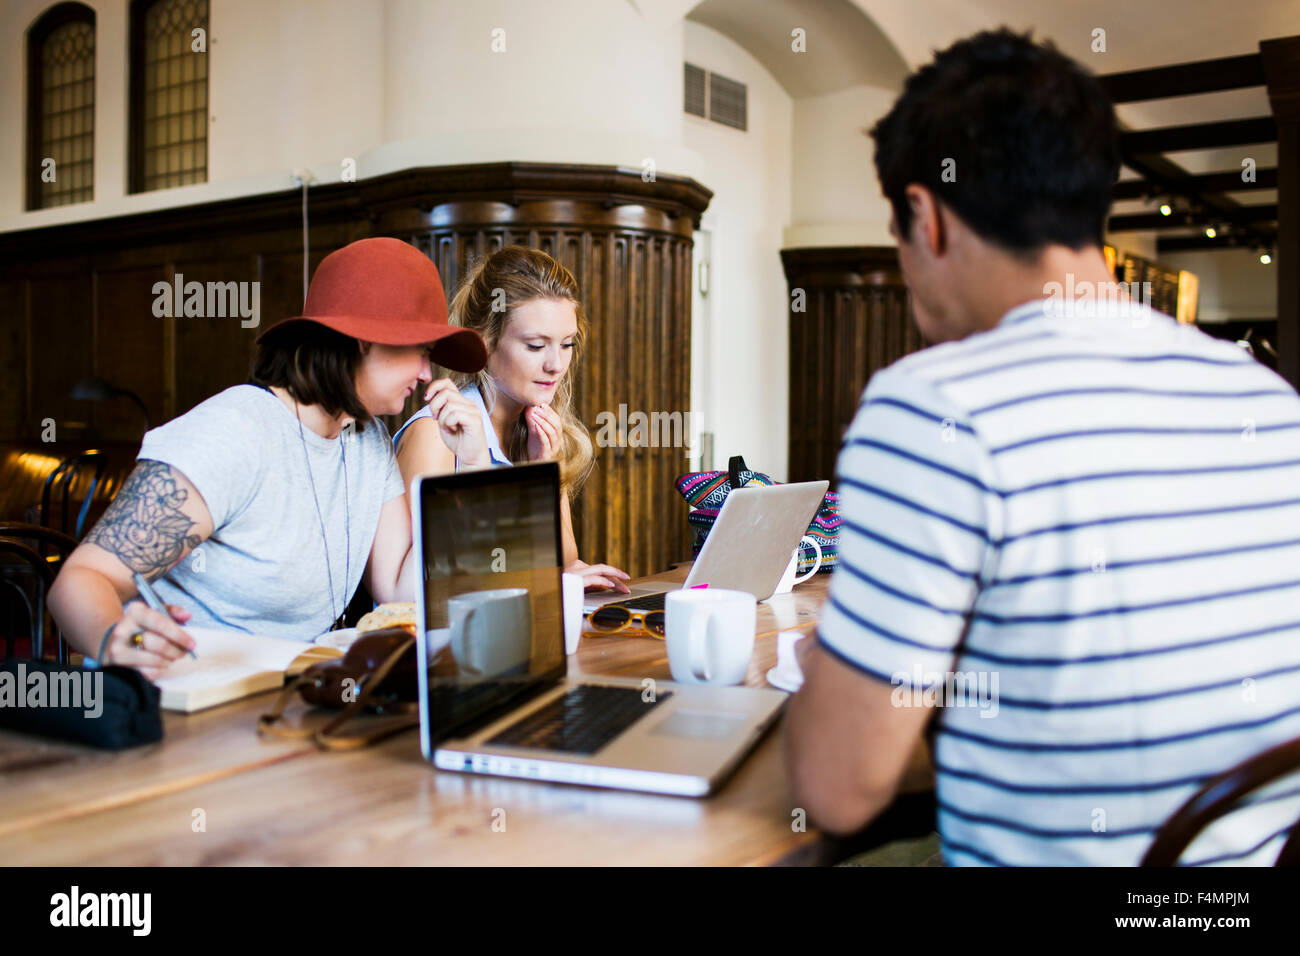 Friends doing freelance work at cafe table - Stock Image